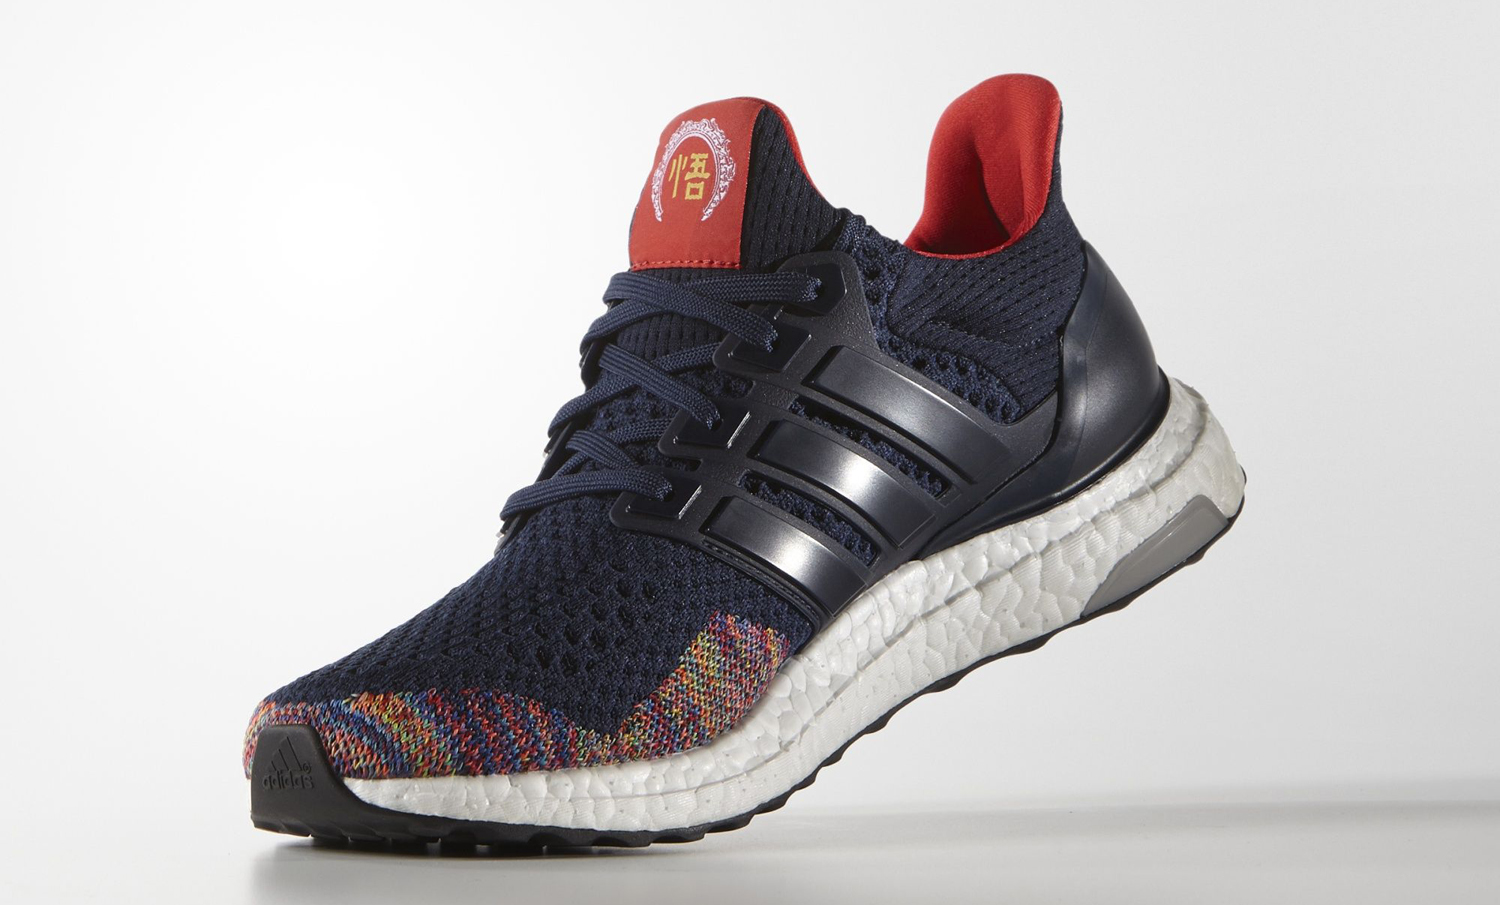 47daaaa44e49 Adidas Ultra Boosts Celebrate Chinese New Year